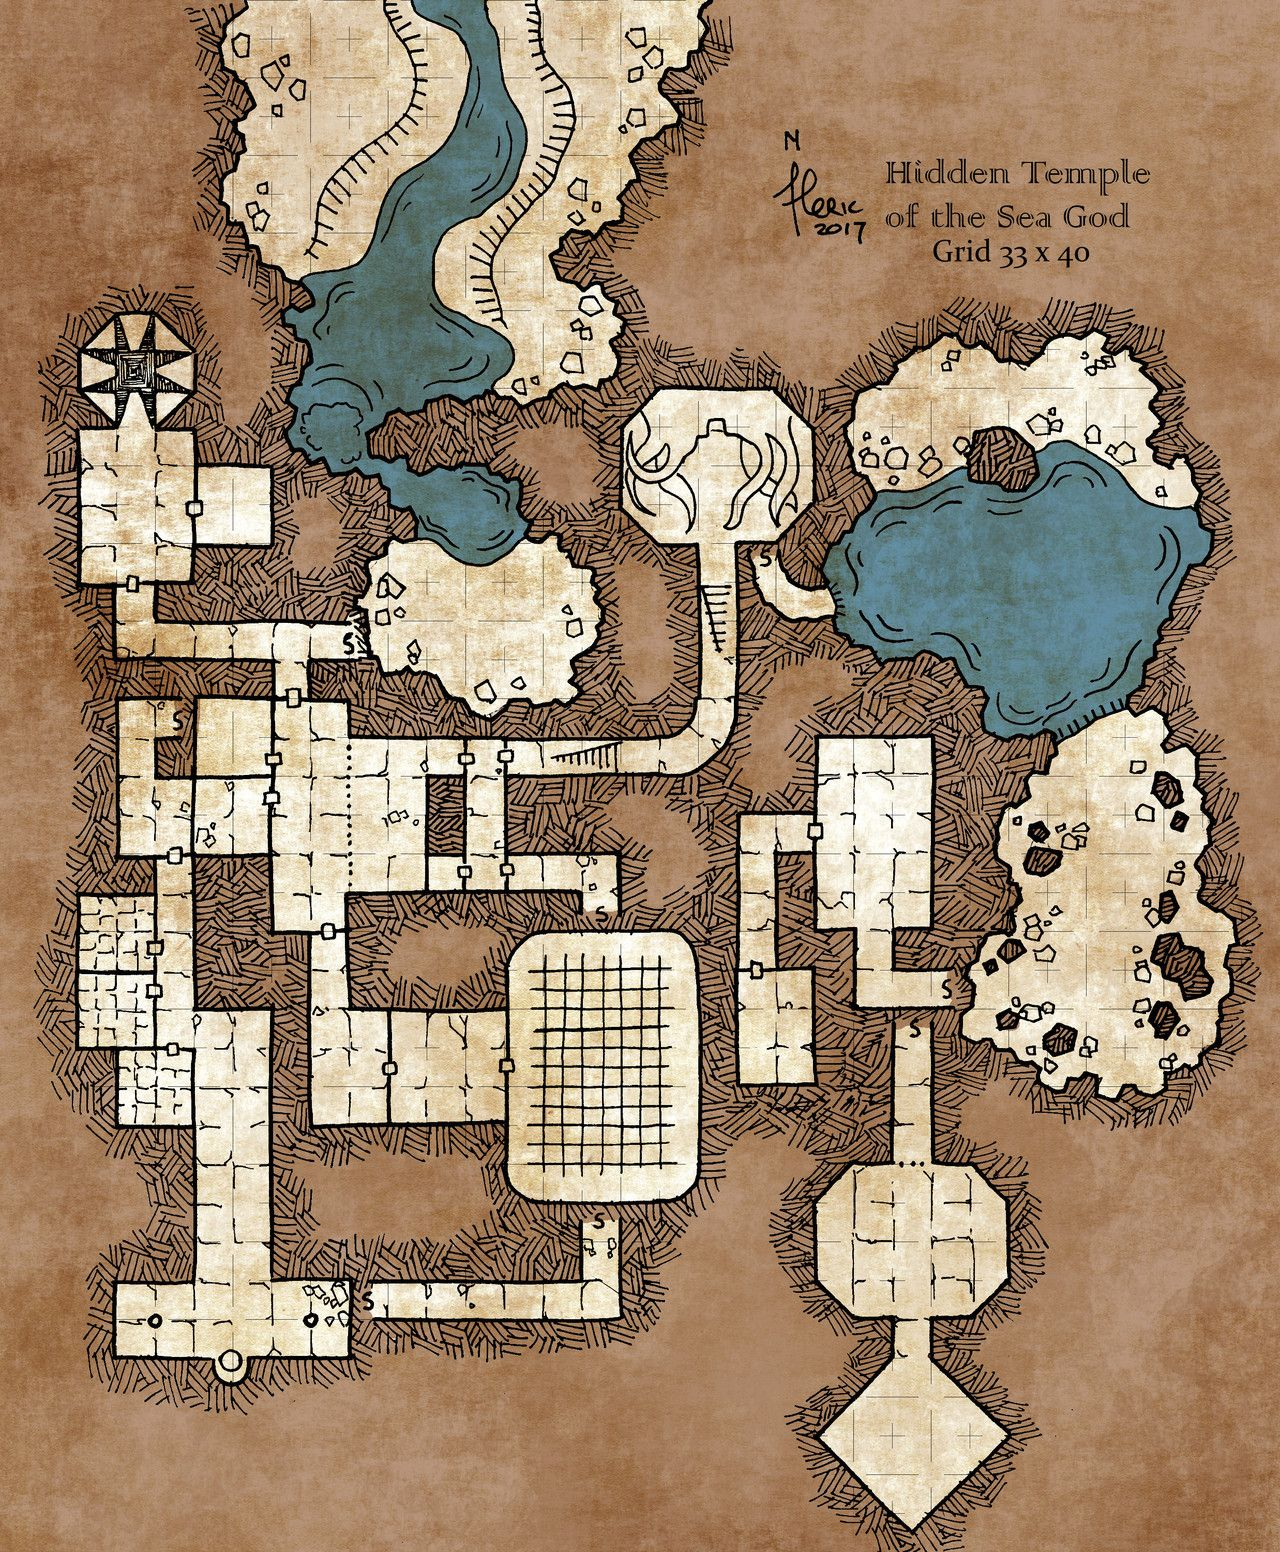 Pin by Zeev on D&D in 2019 | Dungeon maps, Fantasy map ...